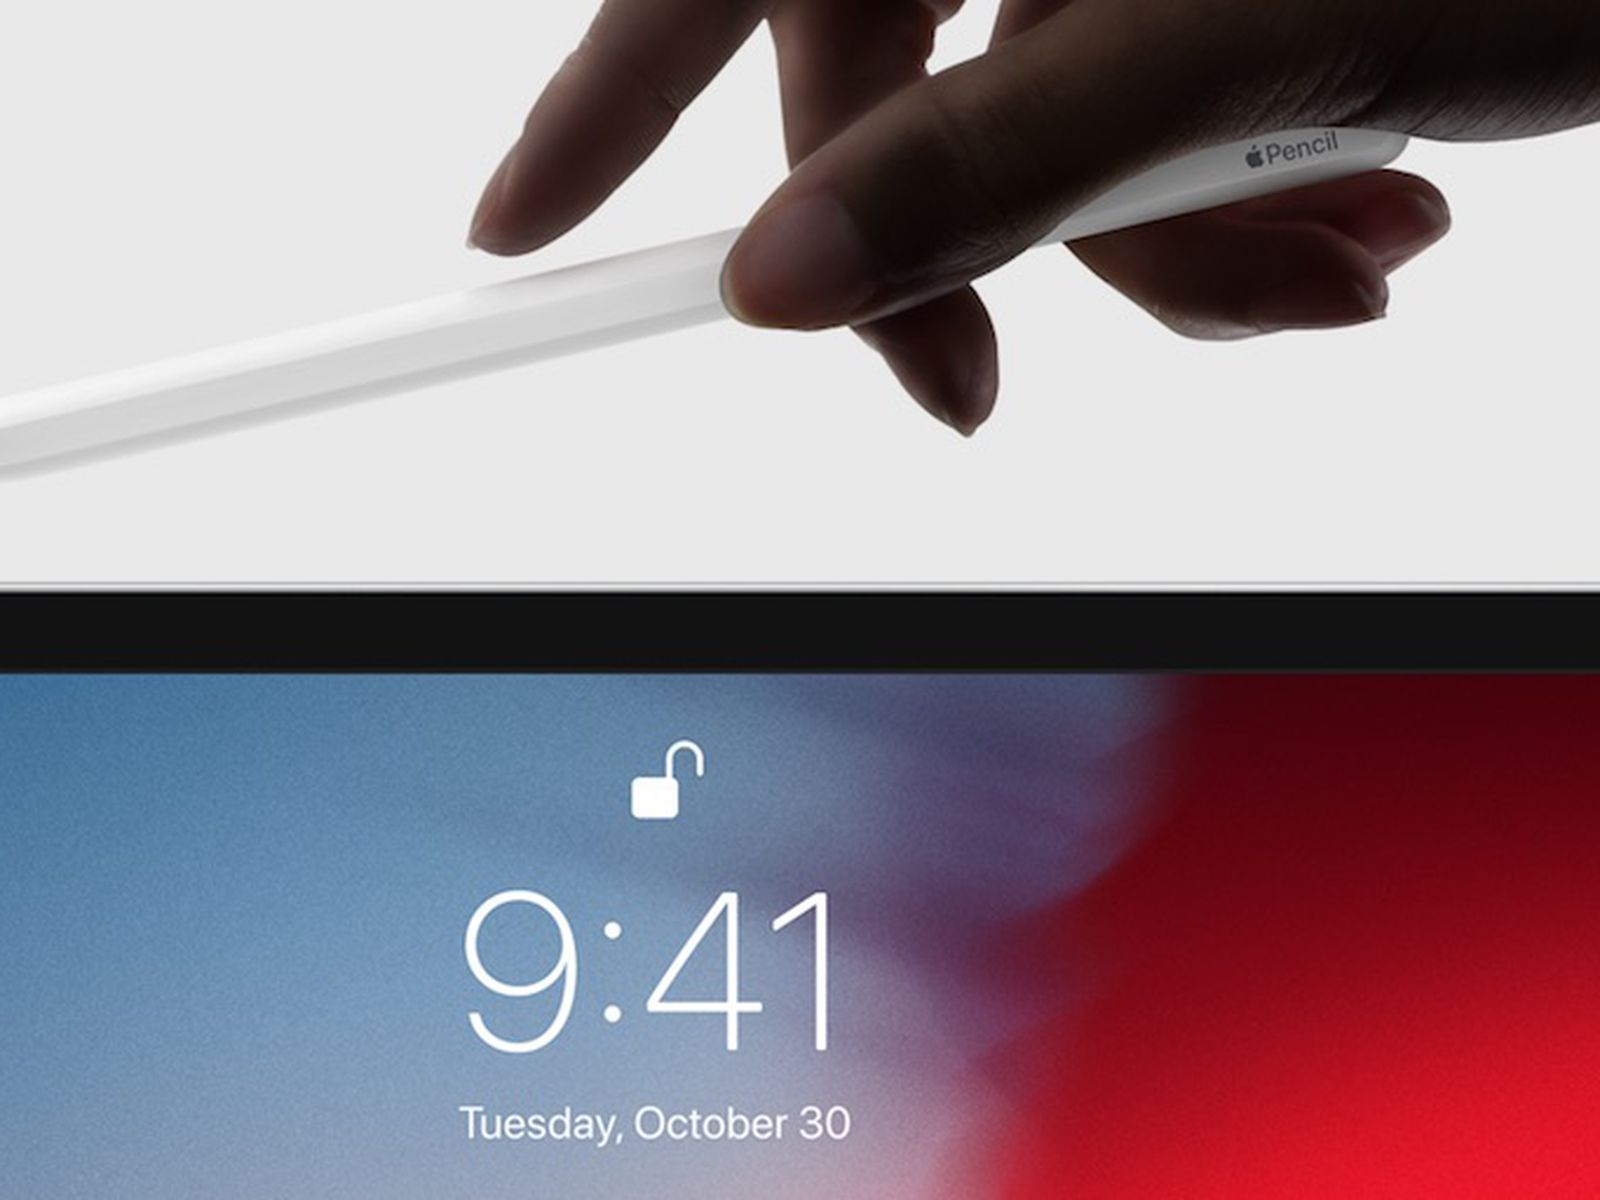 Apple Pencil Now Eligible For Applecare Even Without Being Purchased Alongside An Ipad Macrumors